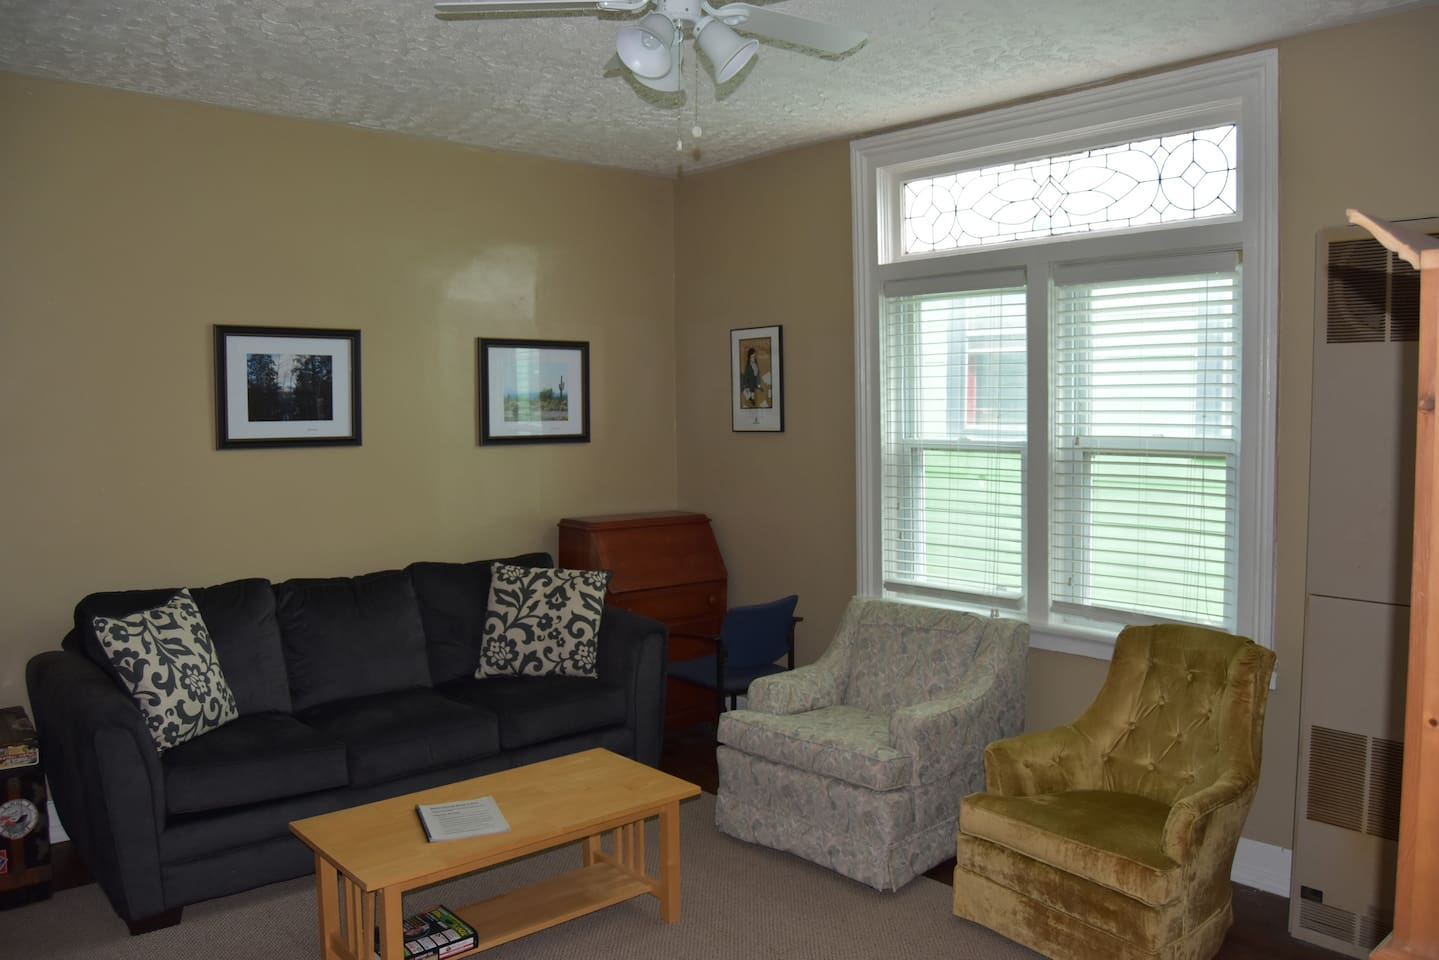 Spacious sitting room with comfortable sofa and chairs along with writing desk.